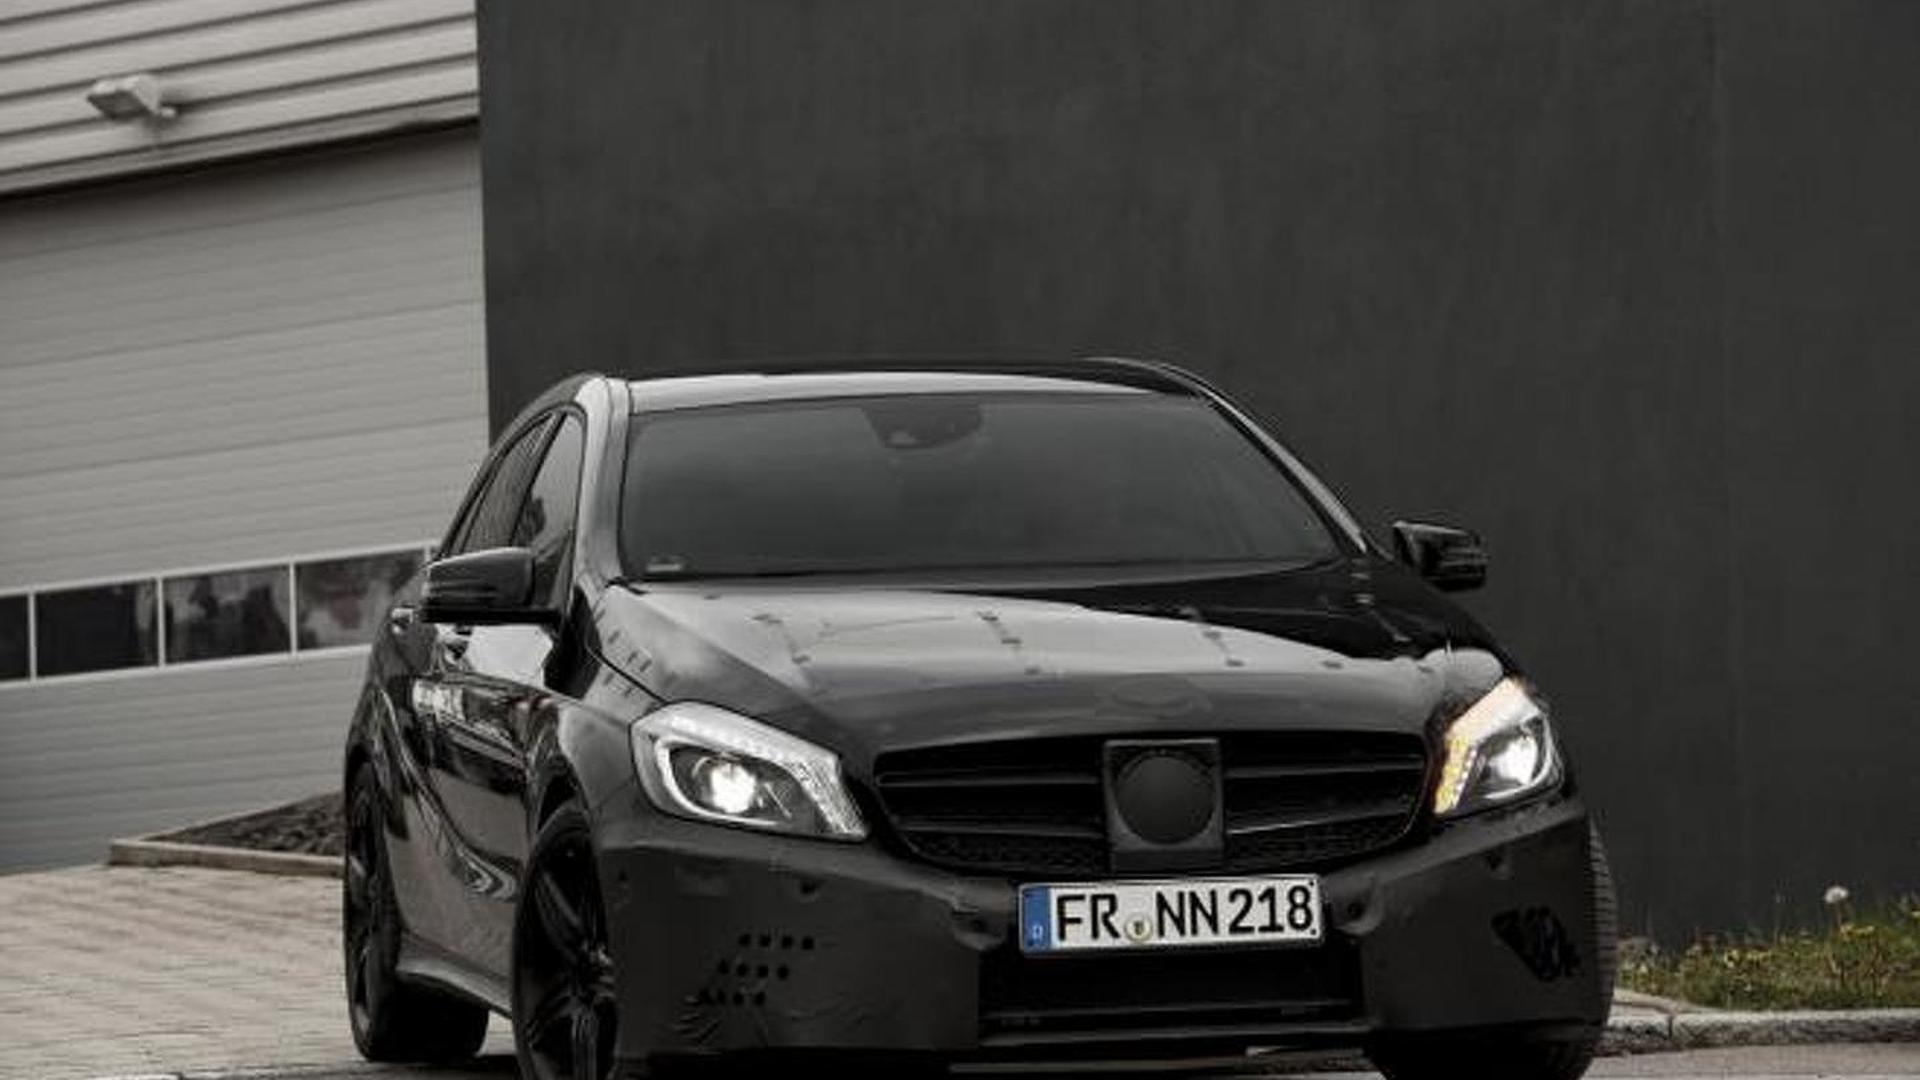 Mercedes A45 AMG first details and photos teased - Black Series hinted?